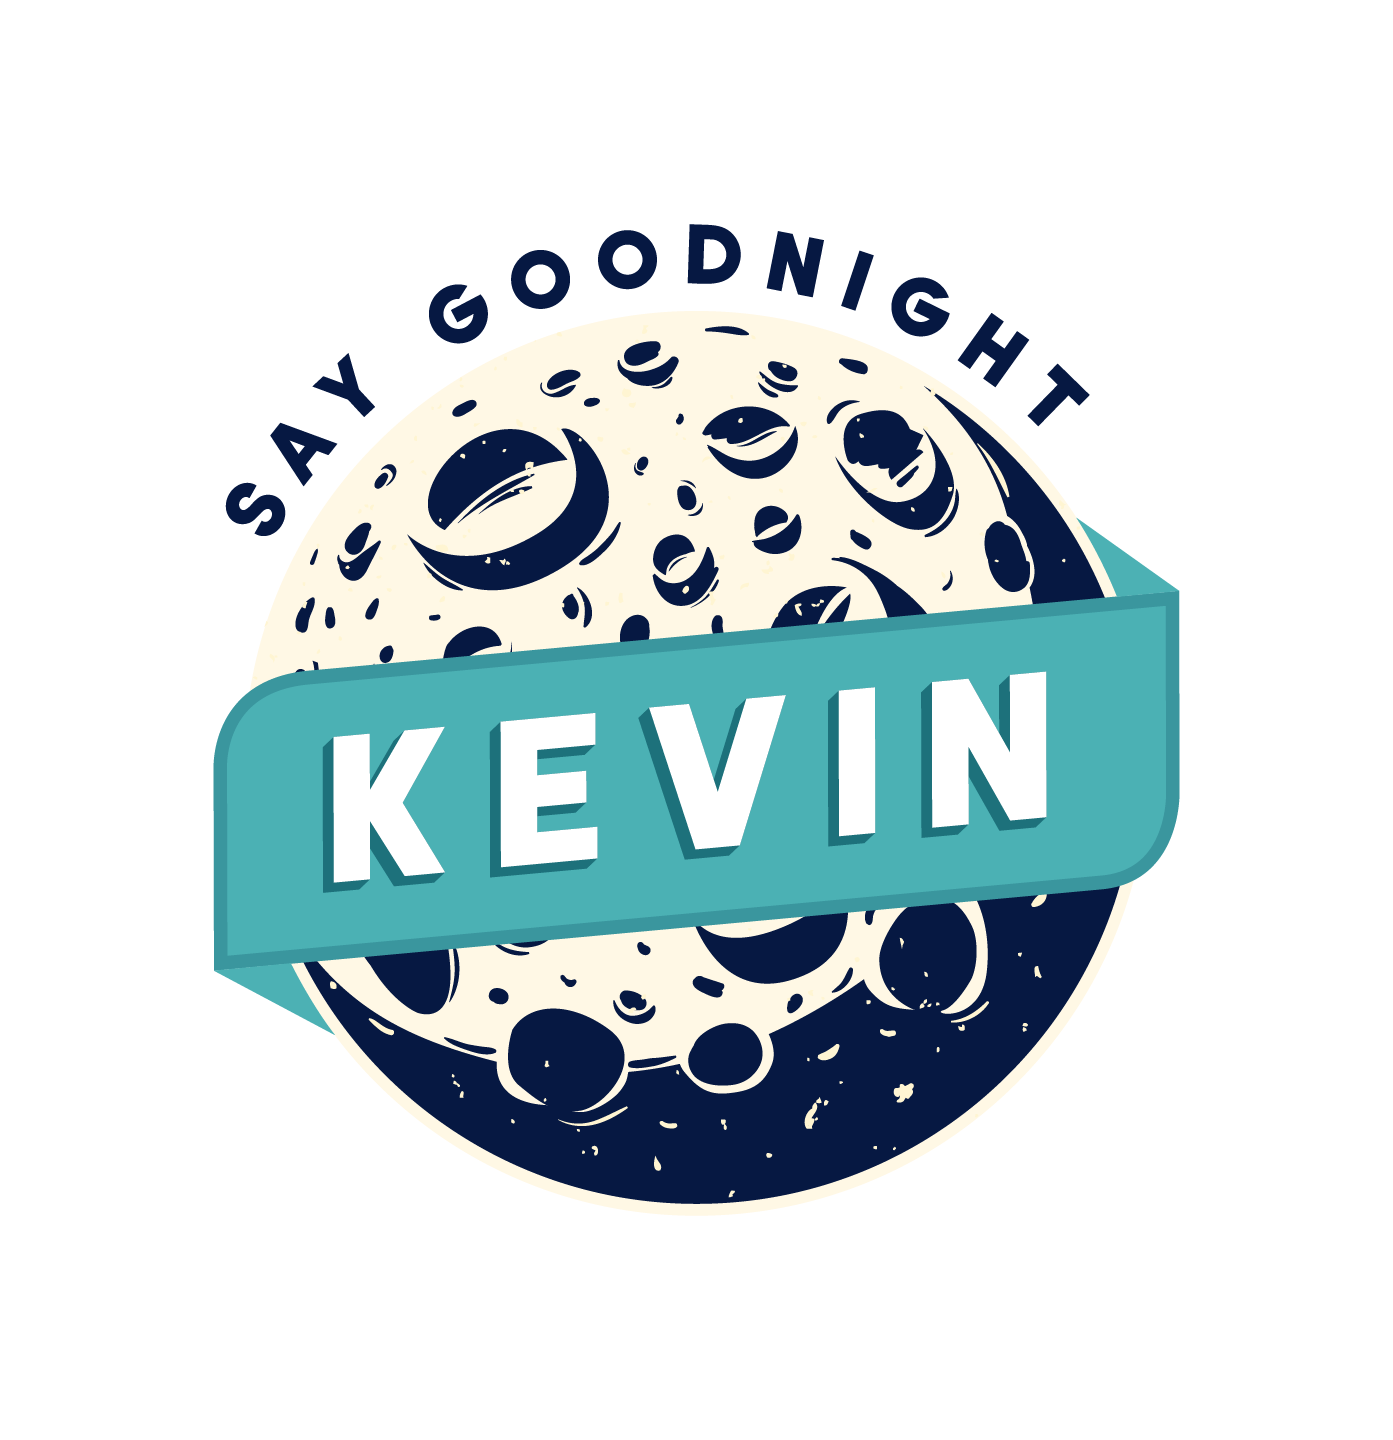 Say Goodnight Kevin